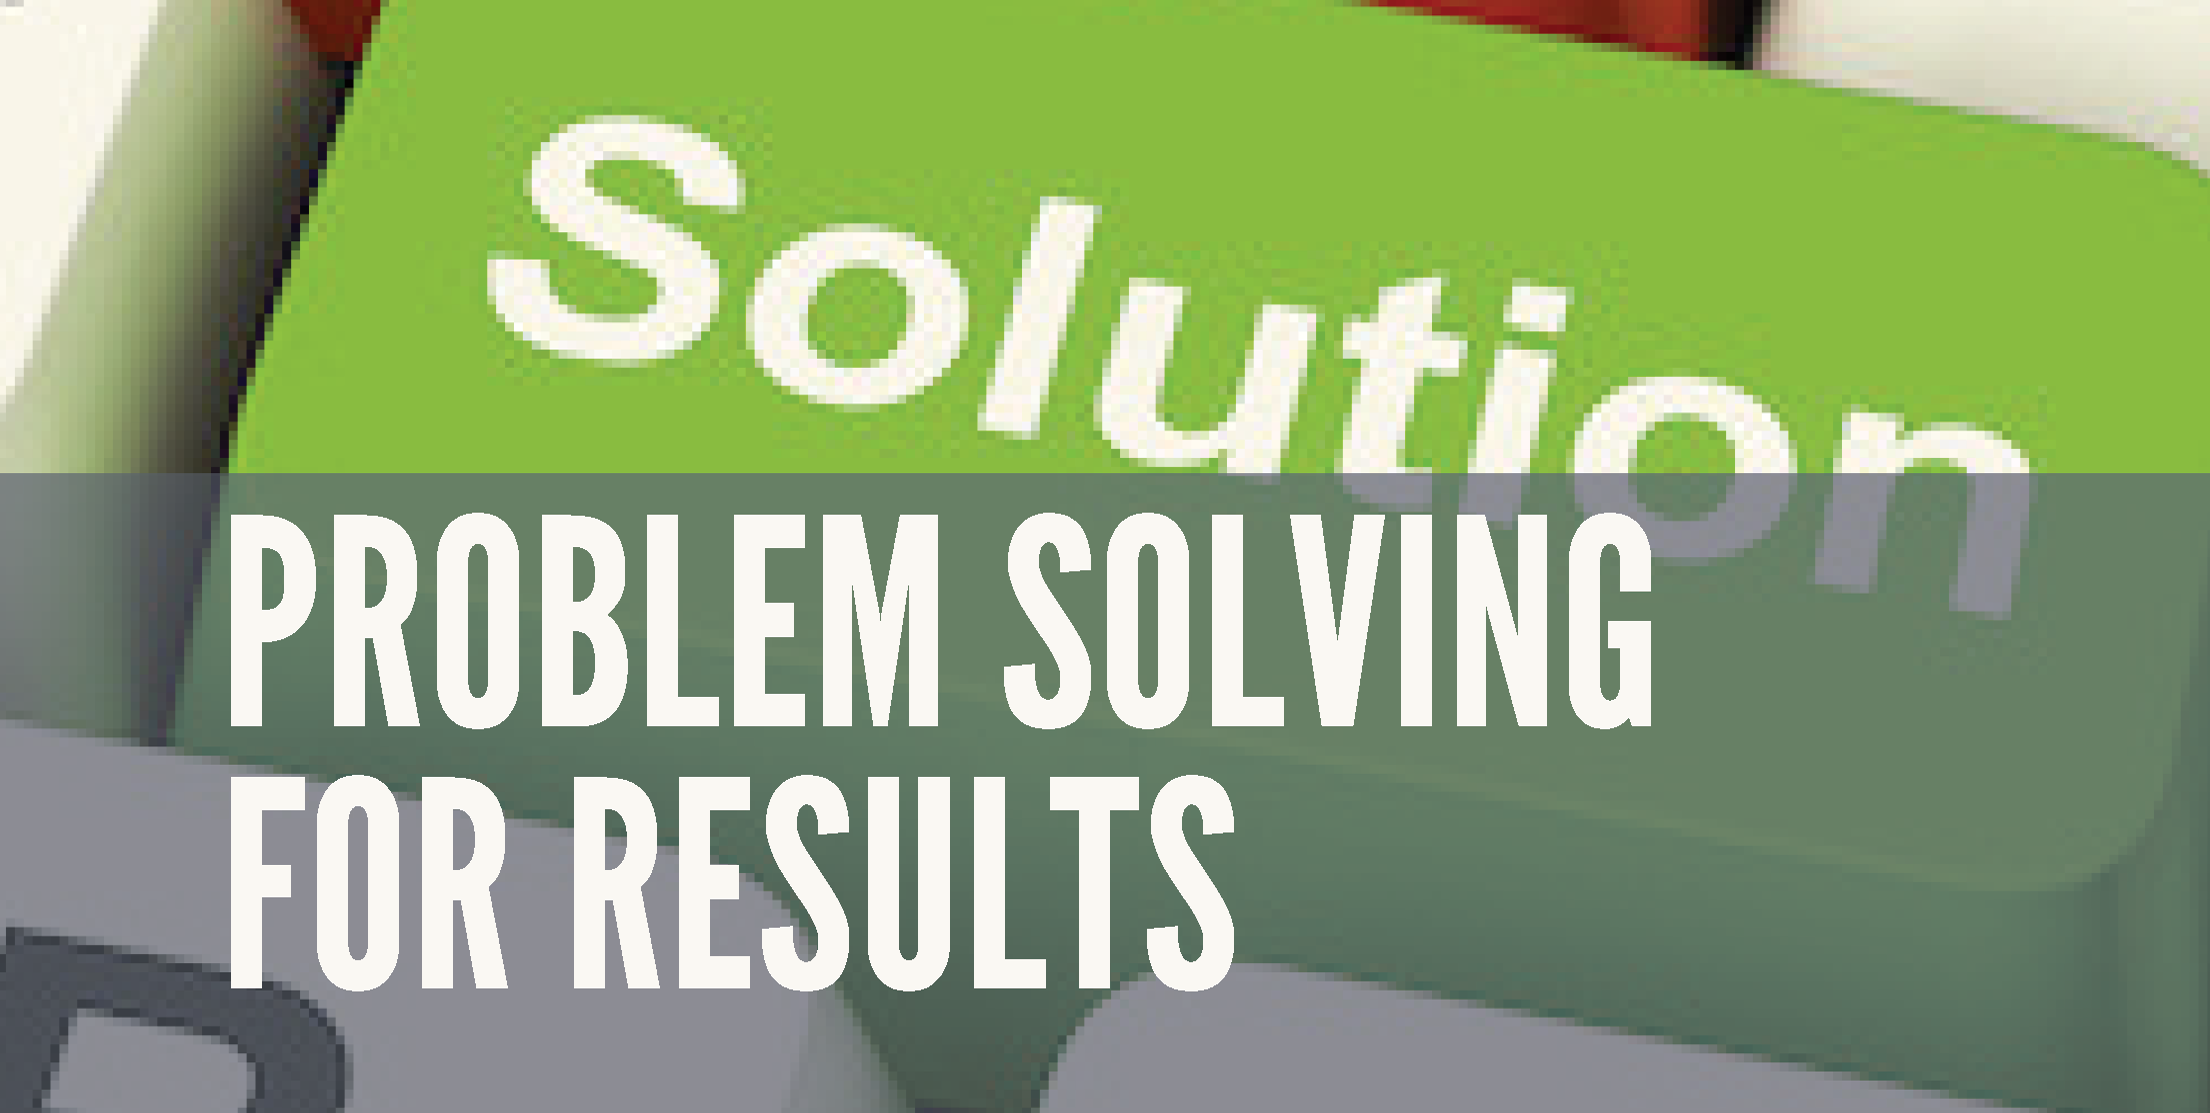 Problem Solving For Results - We are all faced with problems — solving them effectively is an essential skill. In this problem- solving course offered by The Coles Group you will learn a systematic process for problem solving: understanding them, attacking them and resolving them. The program gives an overall framework: Strategize, Plan, Do and Review. The framework will teach the participant how to benefit from a range of simple but effective models that will support effective problem resolution. Course Duration: 1-2 Days